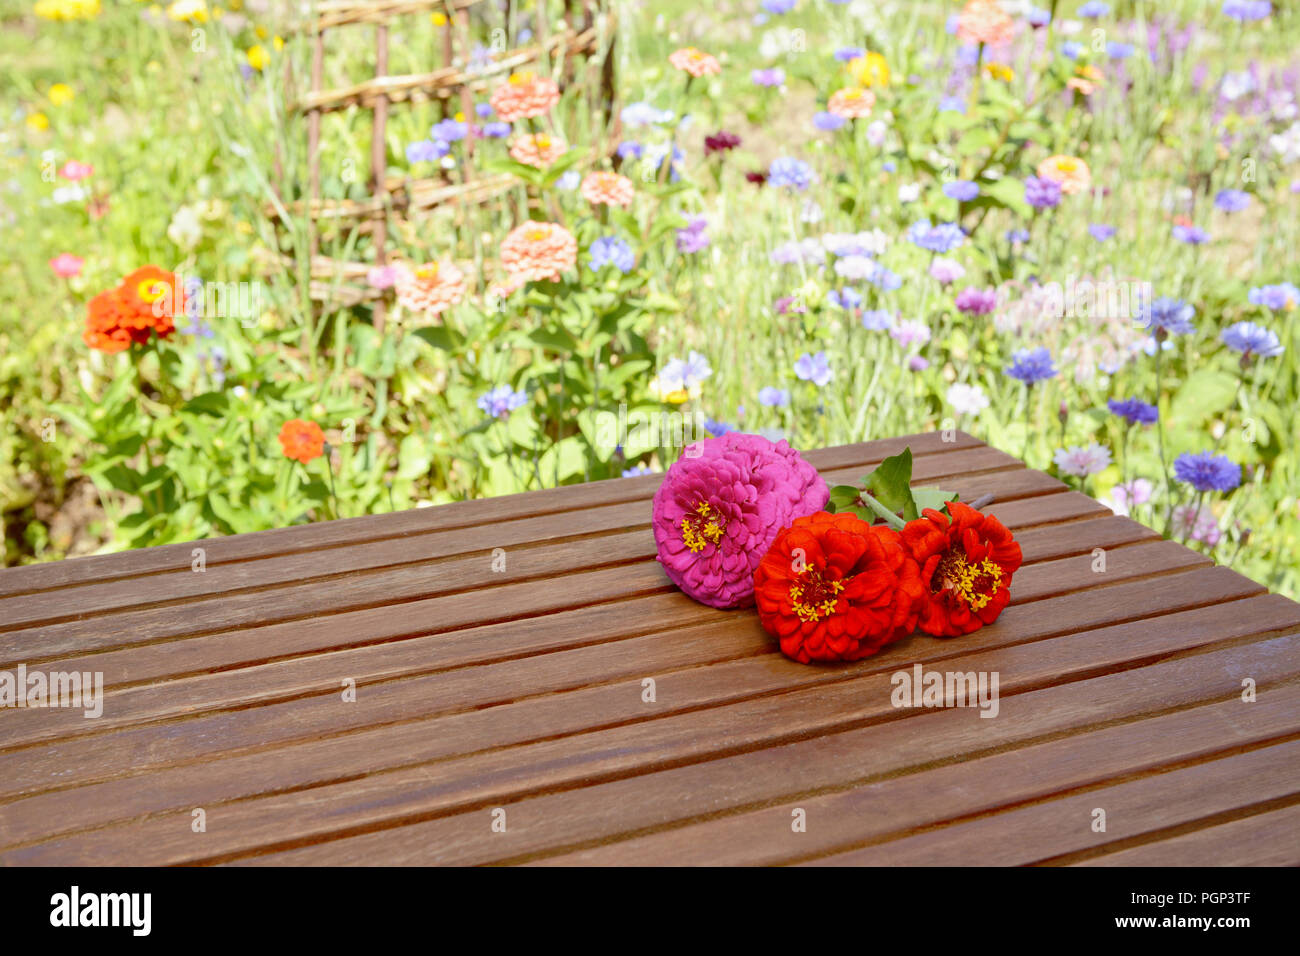 Three cut zinnia blooms with copy space on a wooden table, a colourful flower bed lies beyond - Stock Image